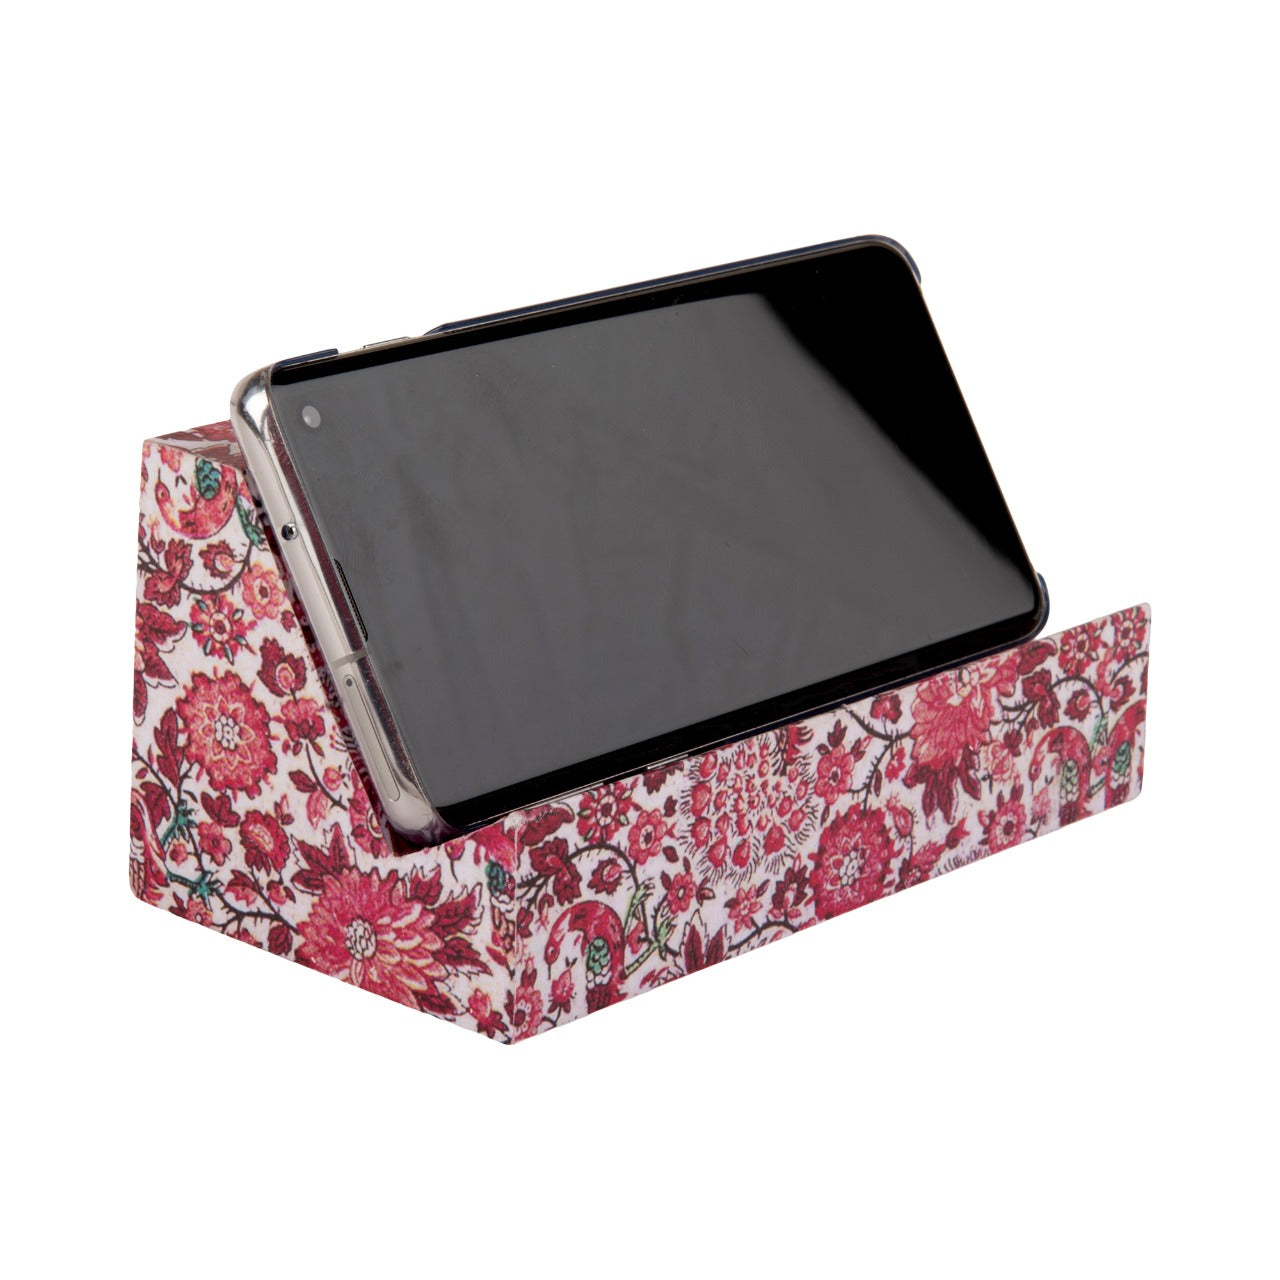 A Tiny Mistake Red Spring Floral Phone Stand for Charging and Watching Videos